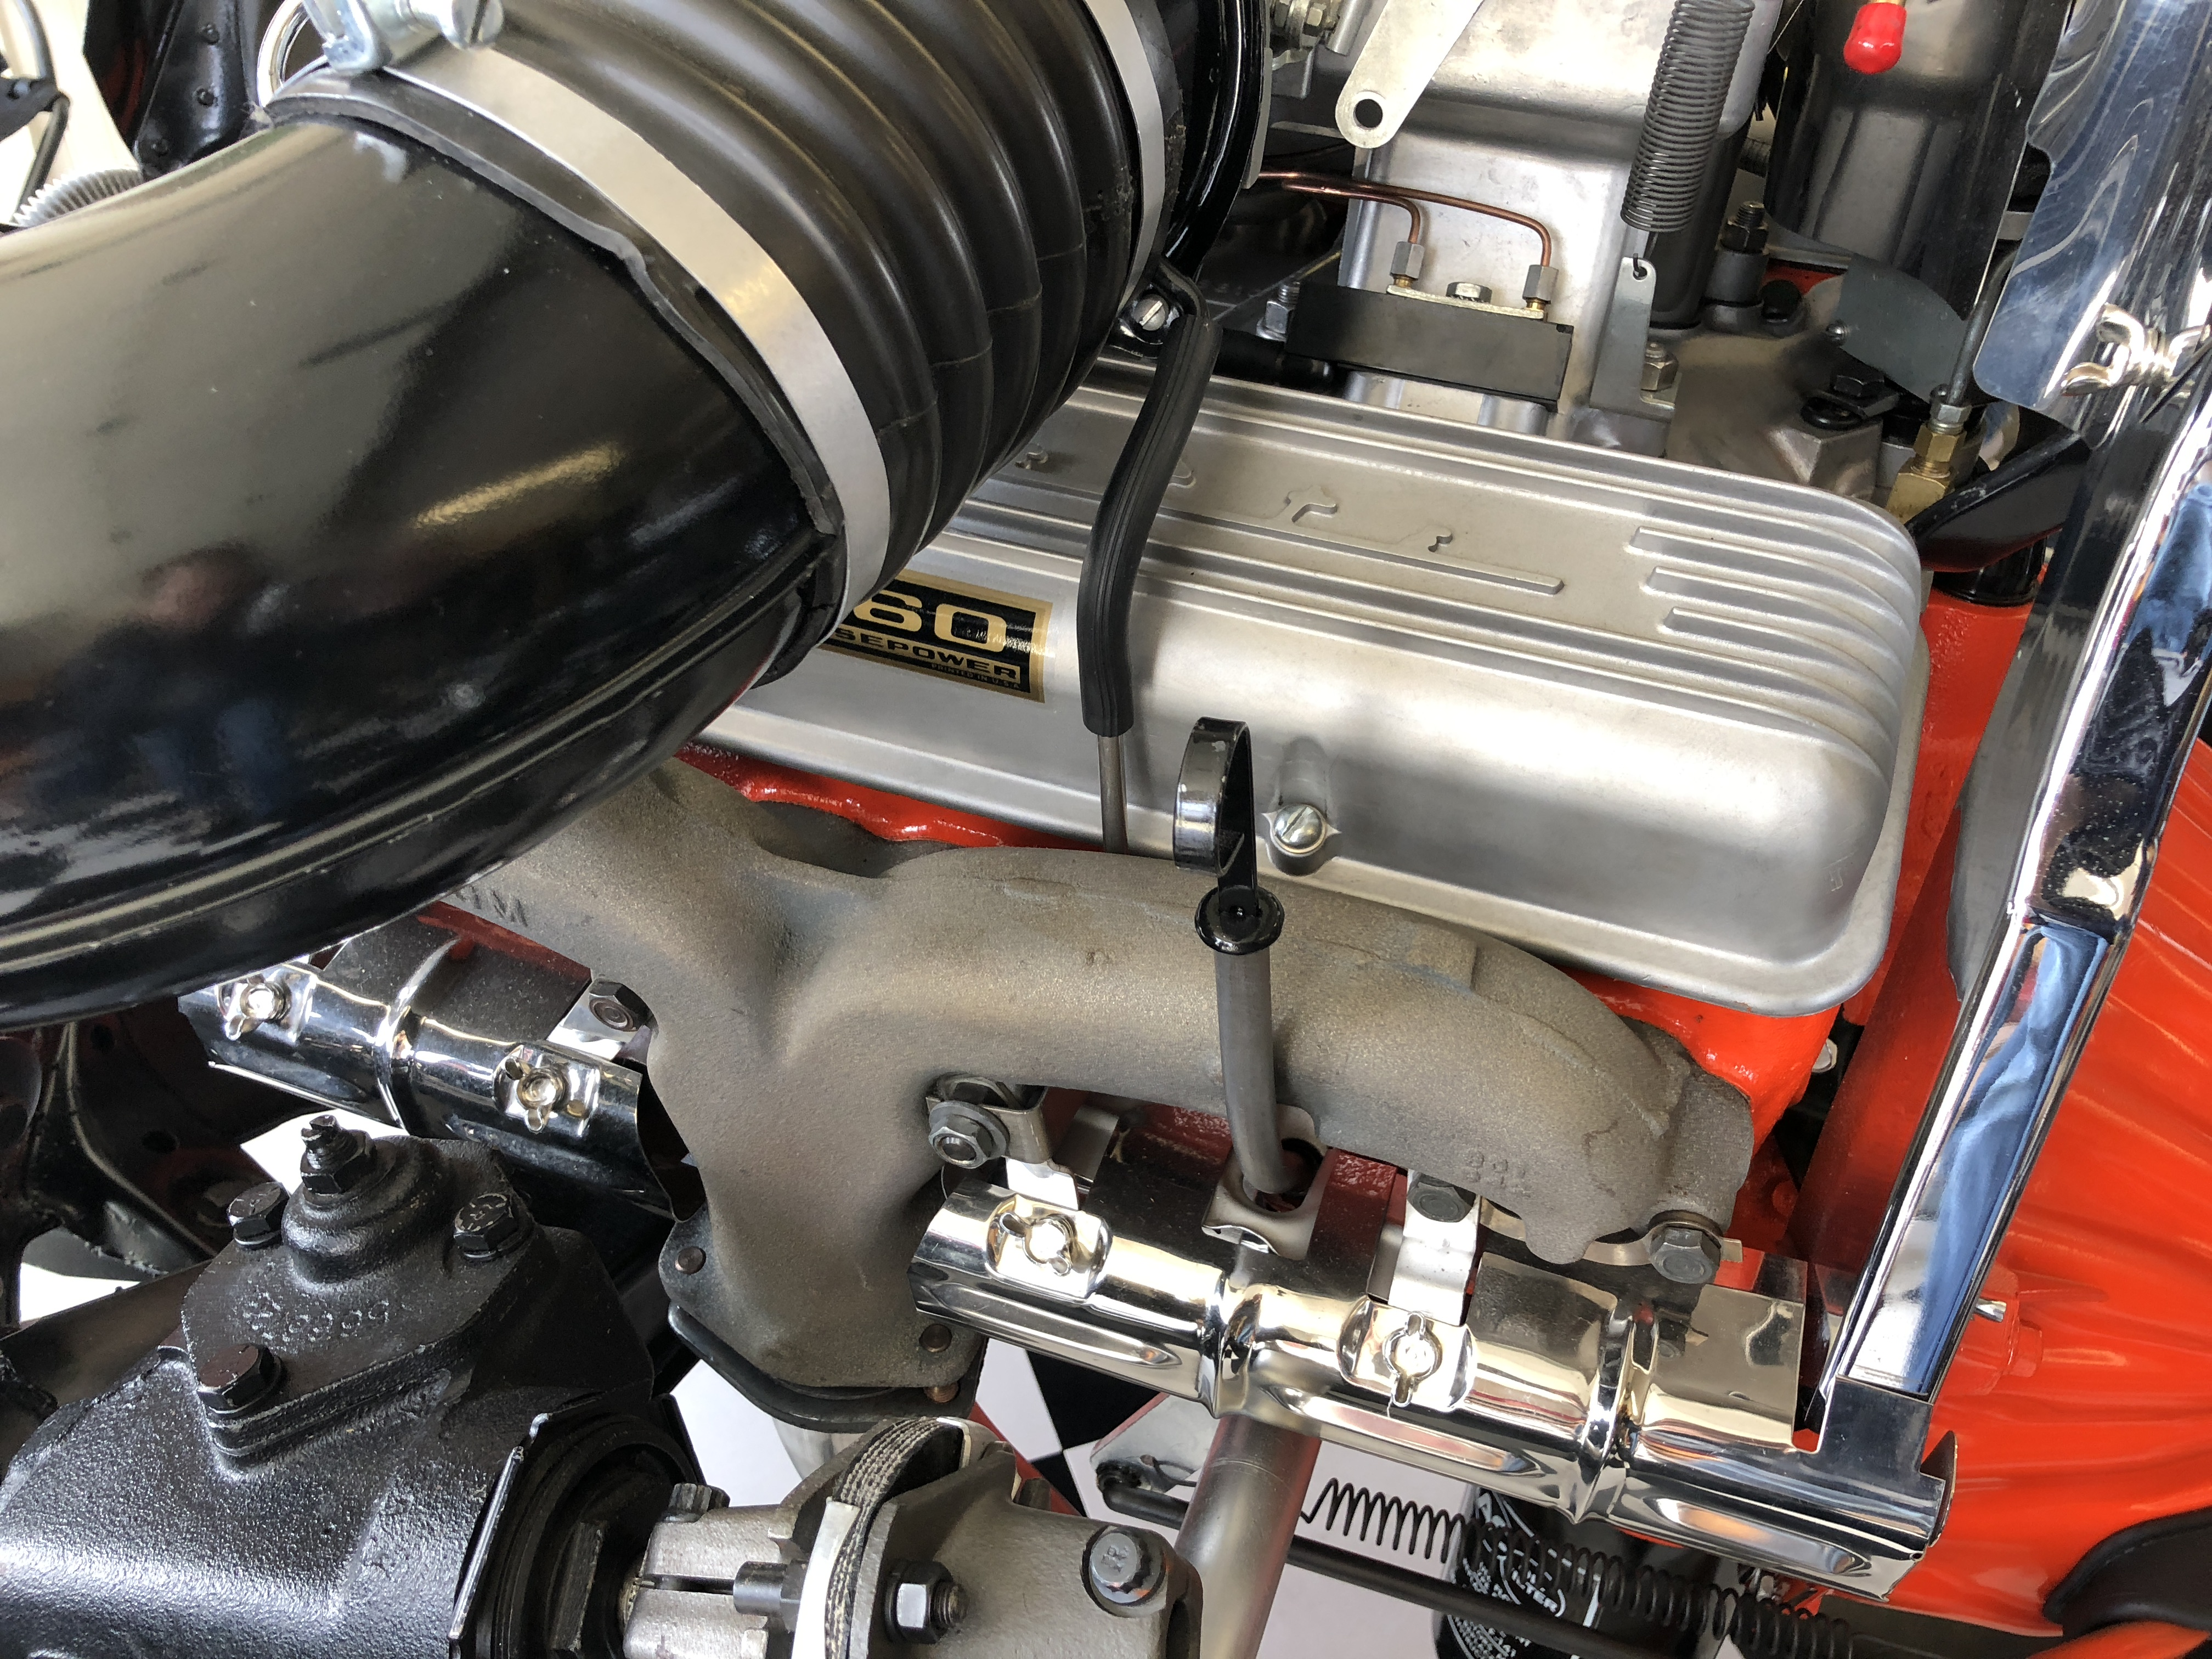 Jeff and Bill's '63 Engine